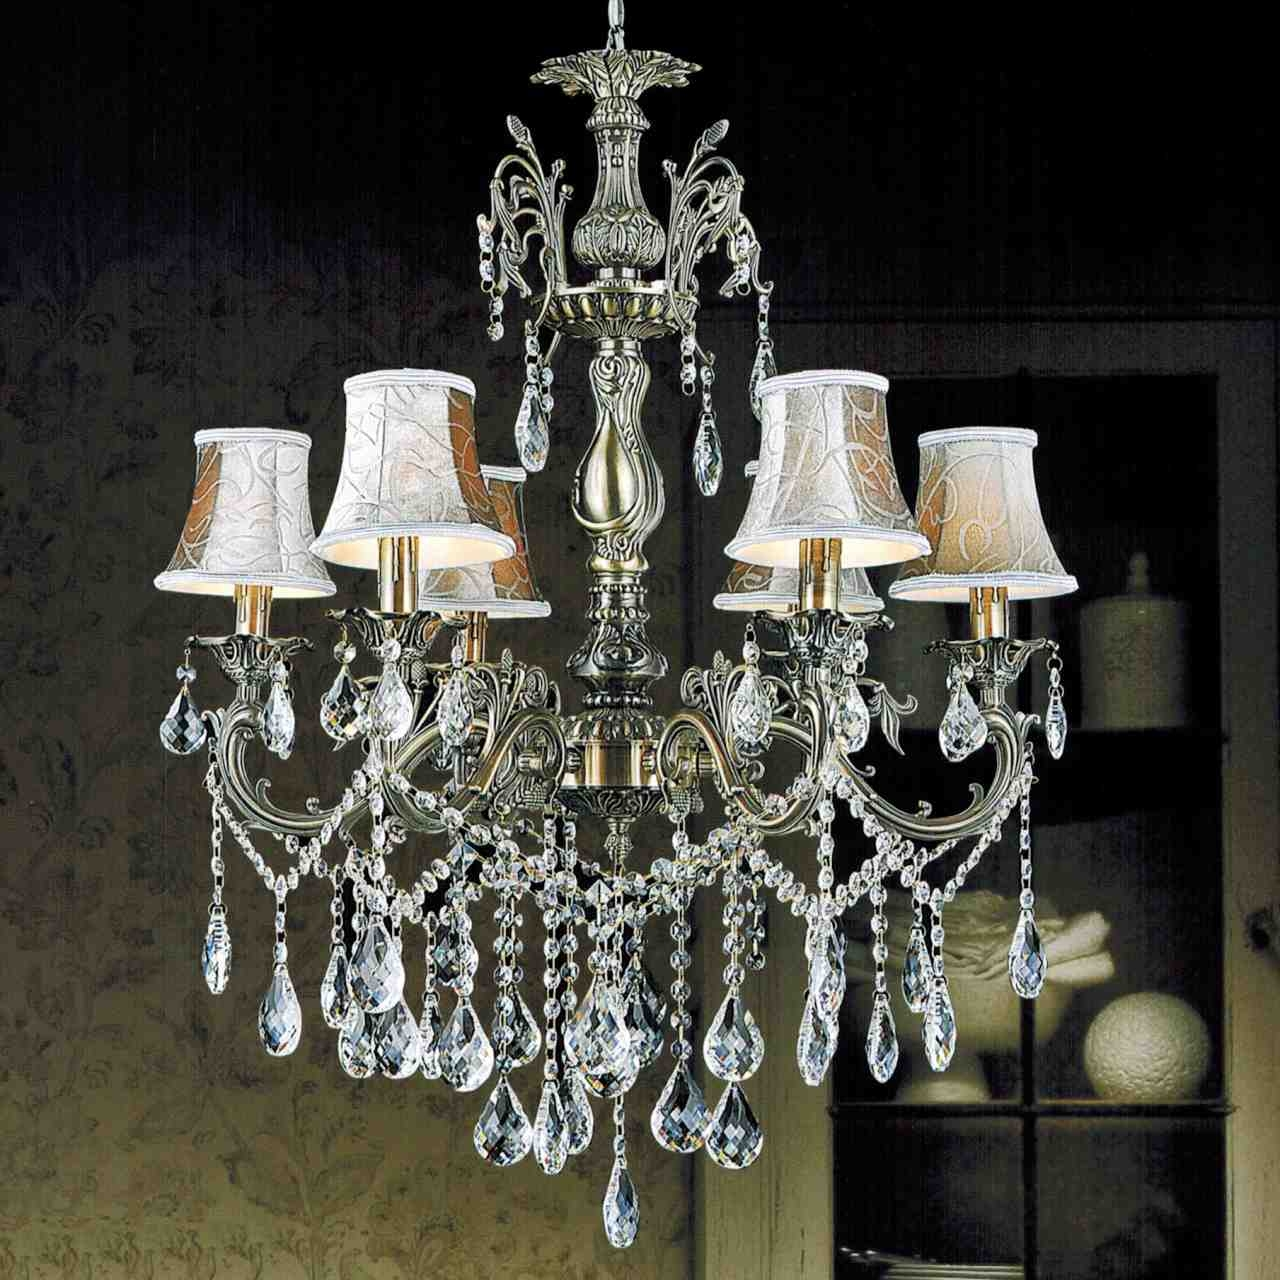 Lamps Crystal Chandelier Lamp Shades Cool Home Design Throughout Crystal Chandeliers With Shades (View 8 of 25)